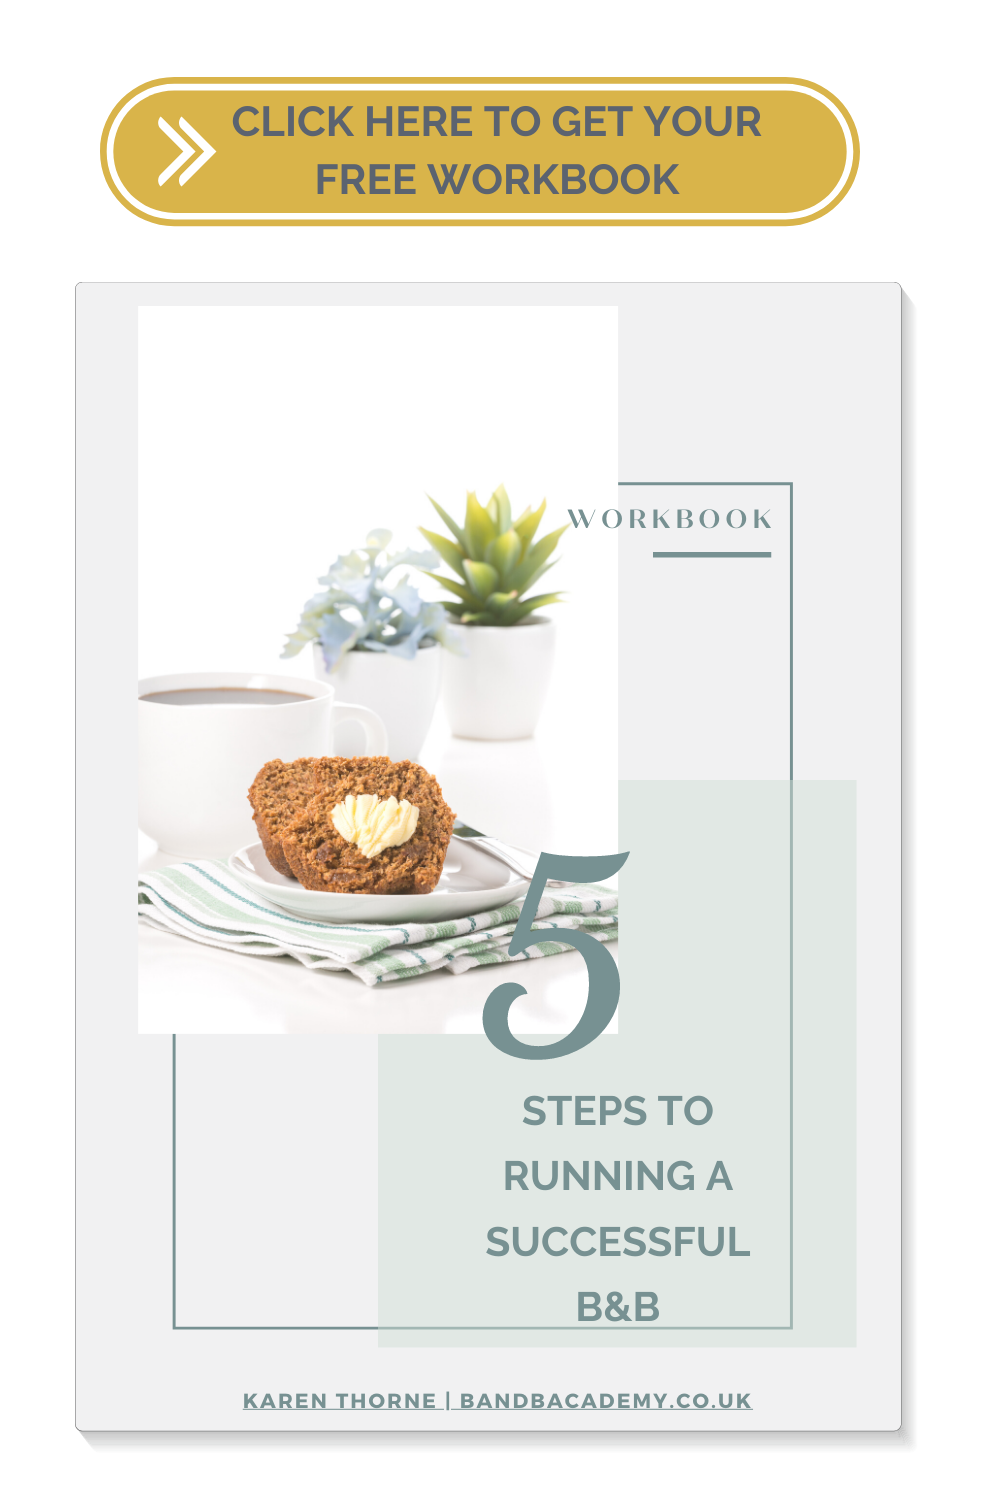 5 STEPS TO RUNNING A SUCCESSFUL B&B WORKBOOK COVER